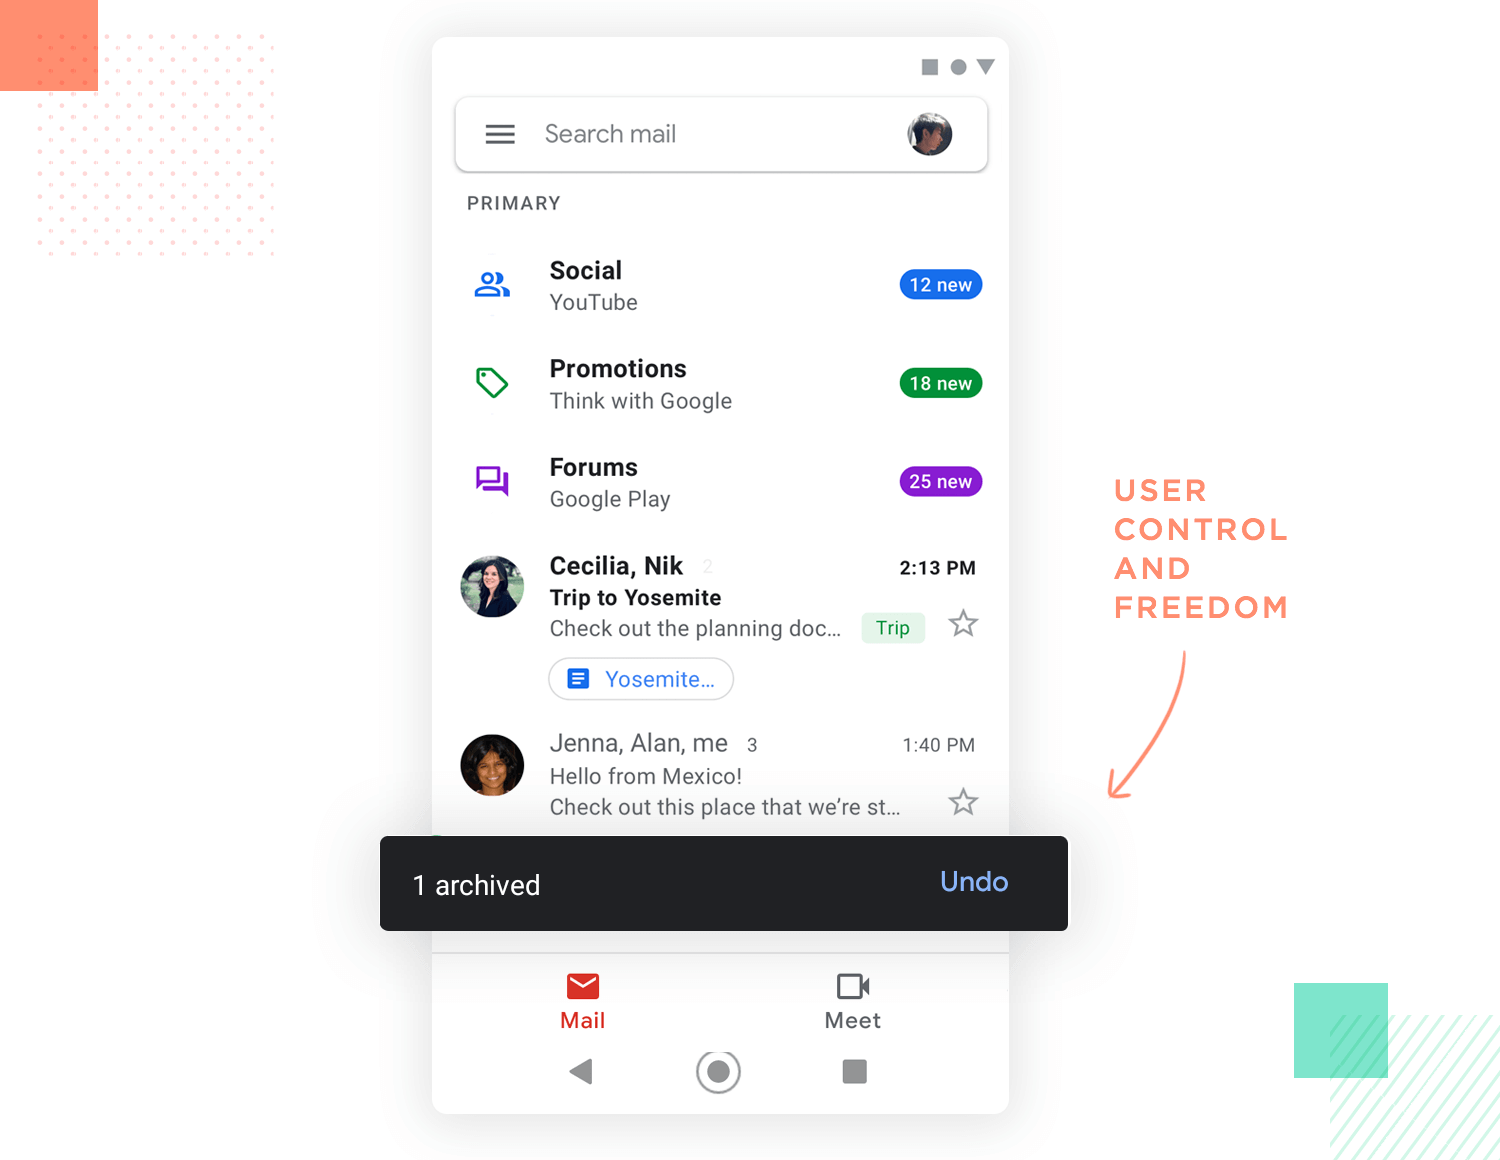 example of user freedom and control in ux design